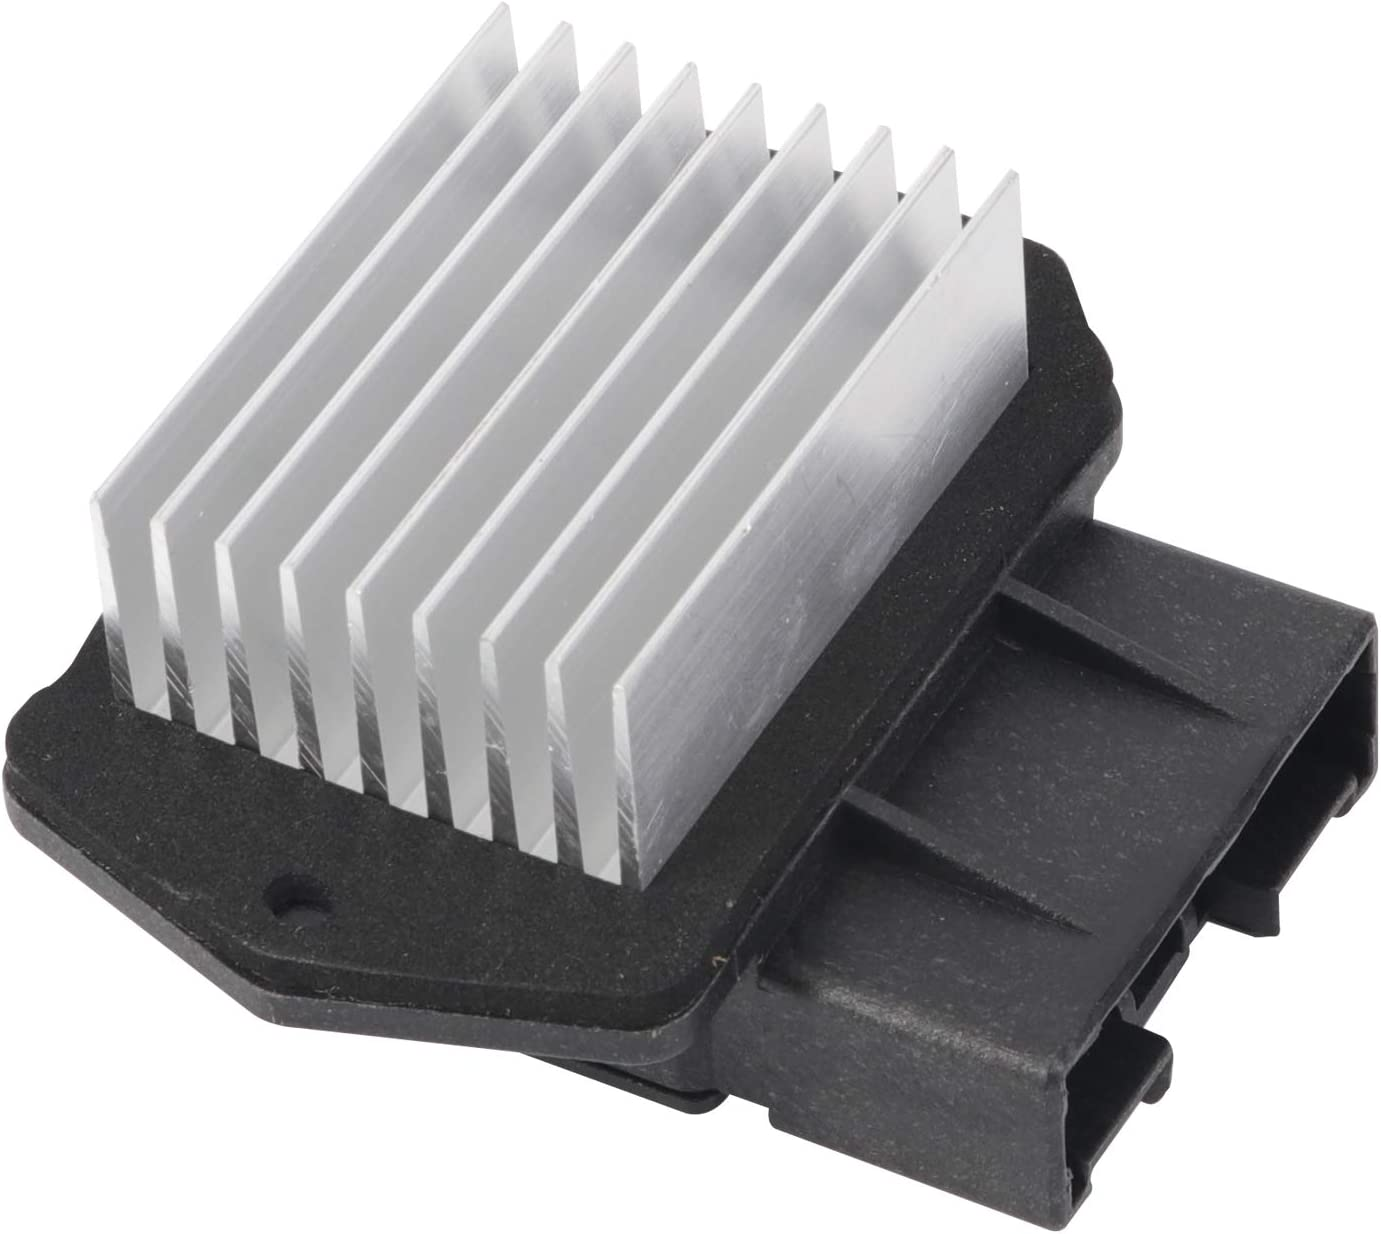 Duolctrams Blower Motor Resistor Compatible with Dodge Ram 1500 2500 3500 GX470 RX350 Scion Replaces 87165-13010 499300-2121 8716513010 4993002121